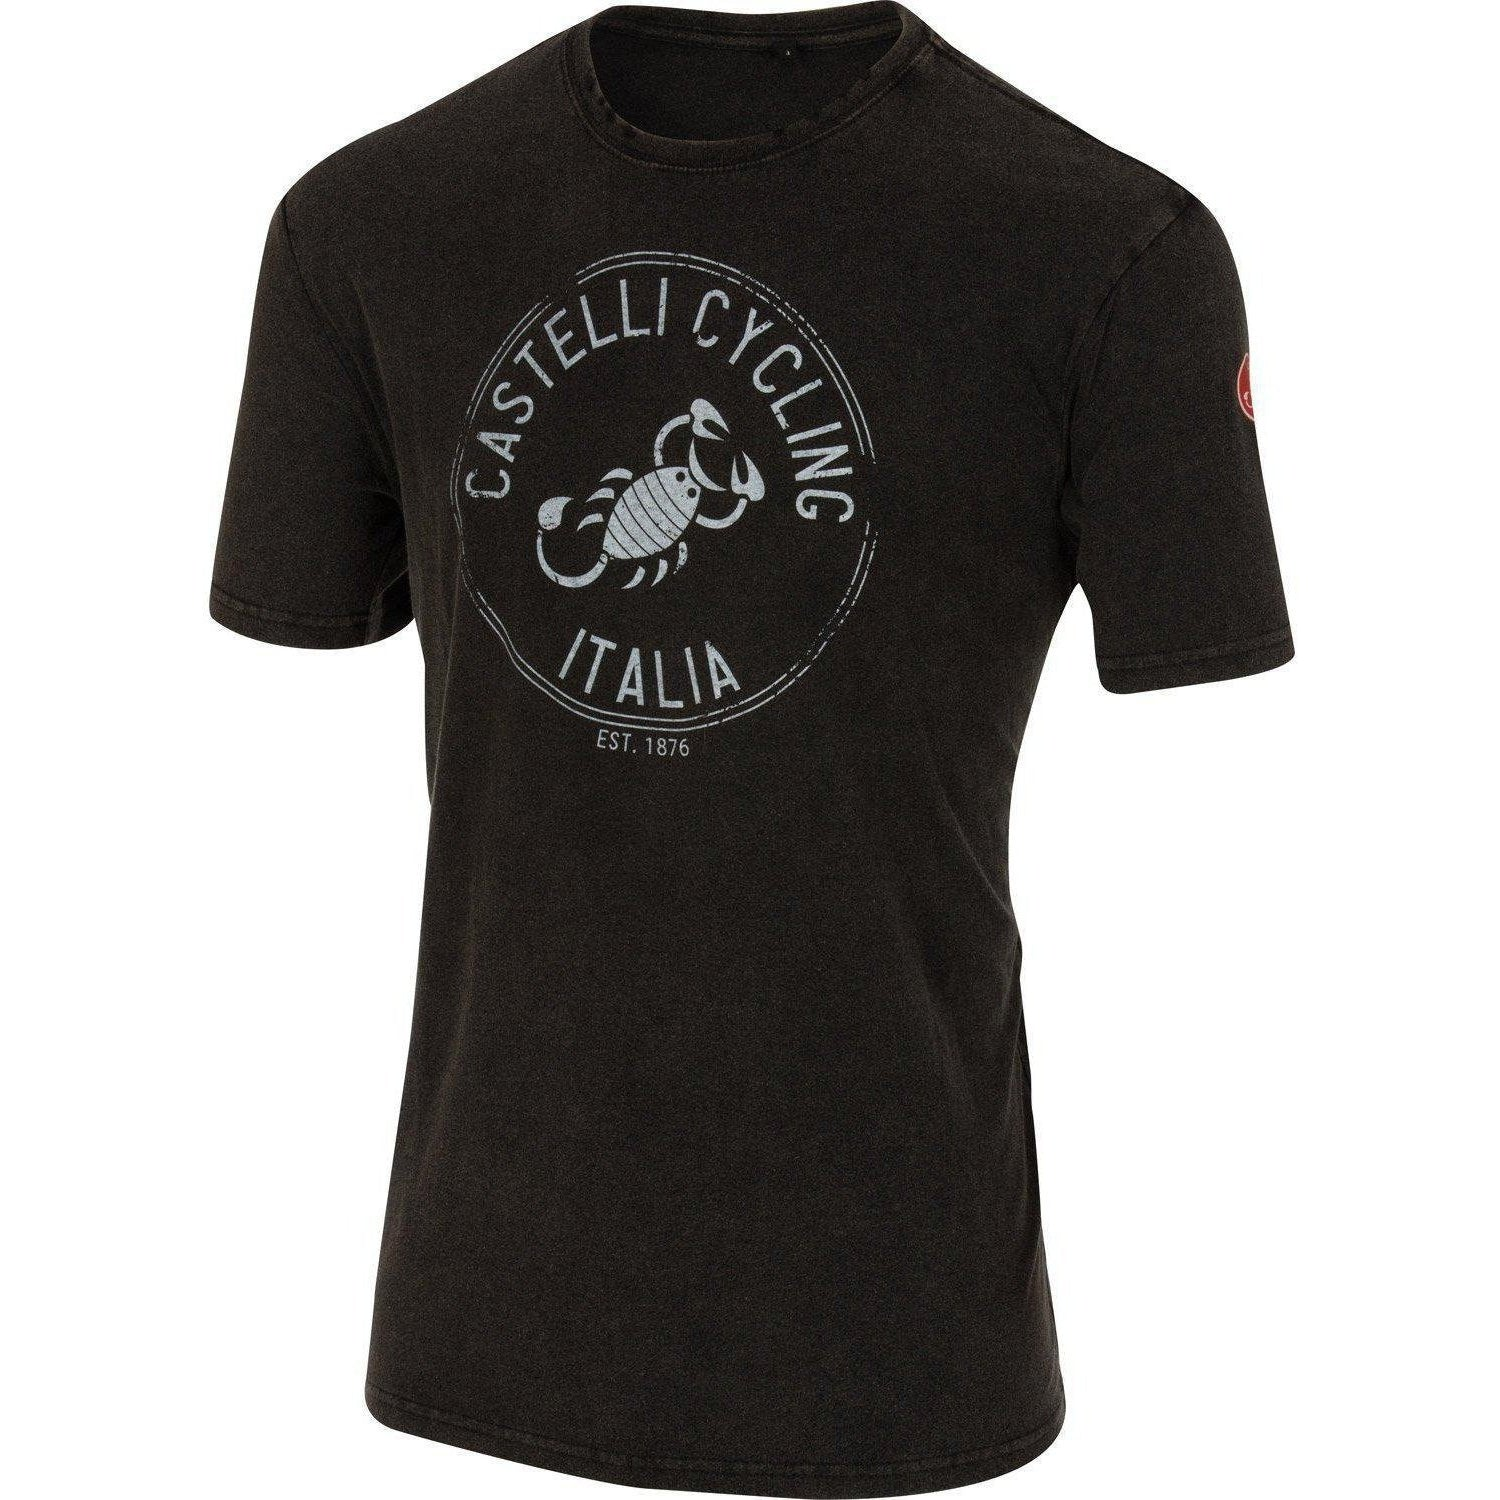 Castelli-Castelli Armando T-shirt-Vintage Black-S-CS160650992-saddleback-elite-performance-cycling